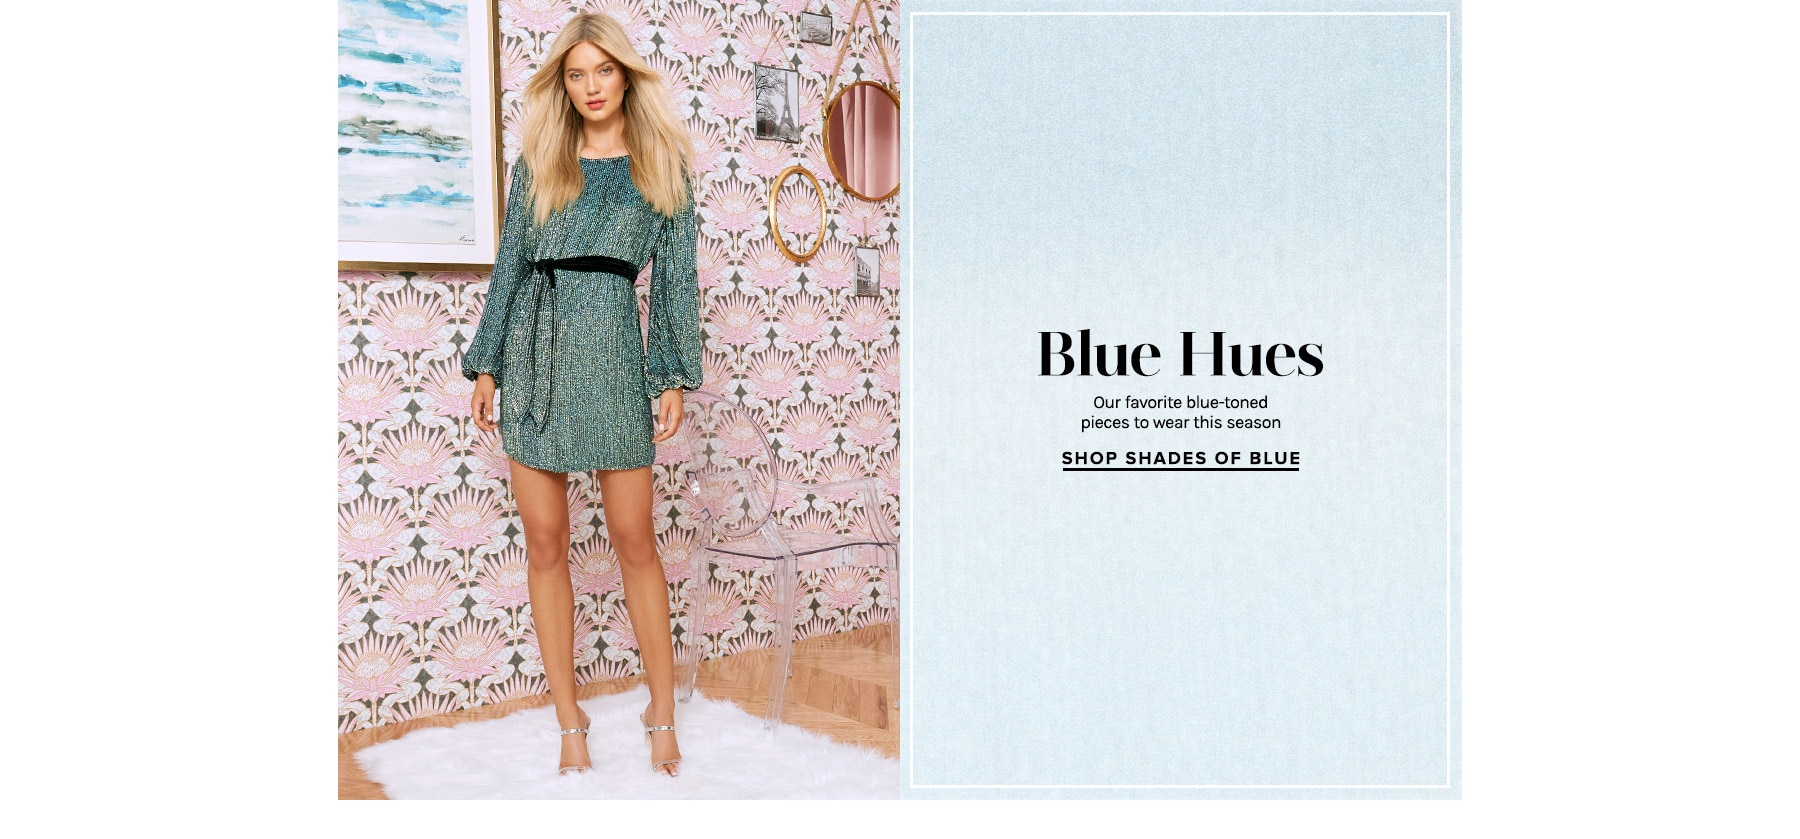 Blue Hues. Our favorite blue-toned pieces to wear this season. Shop Shades of Blue